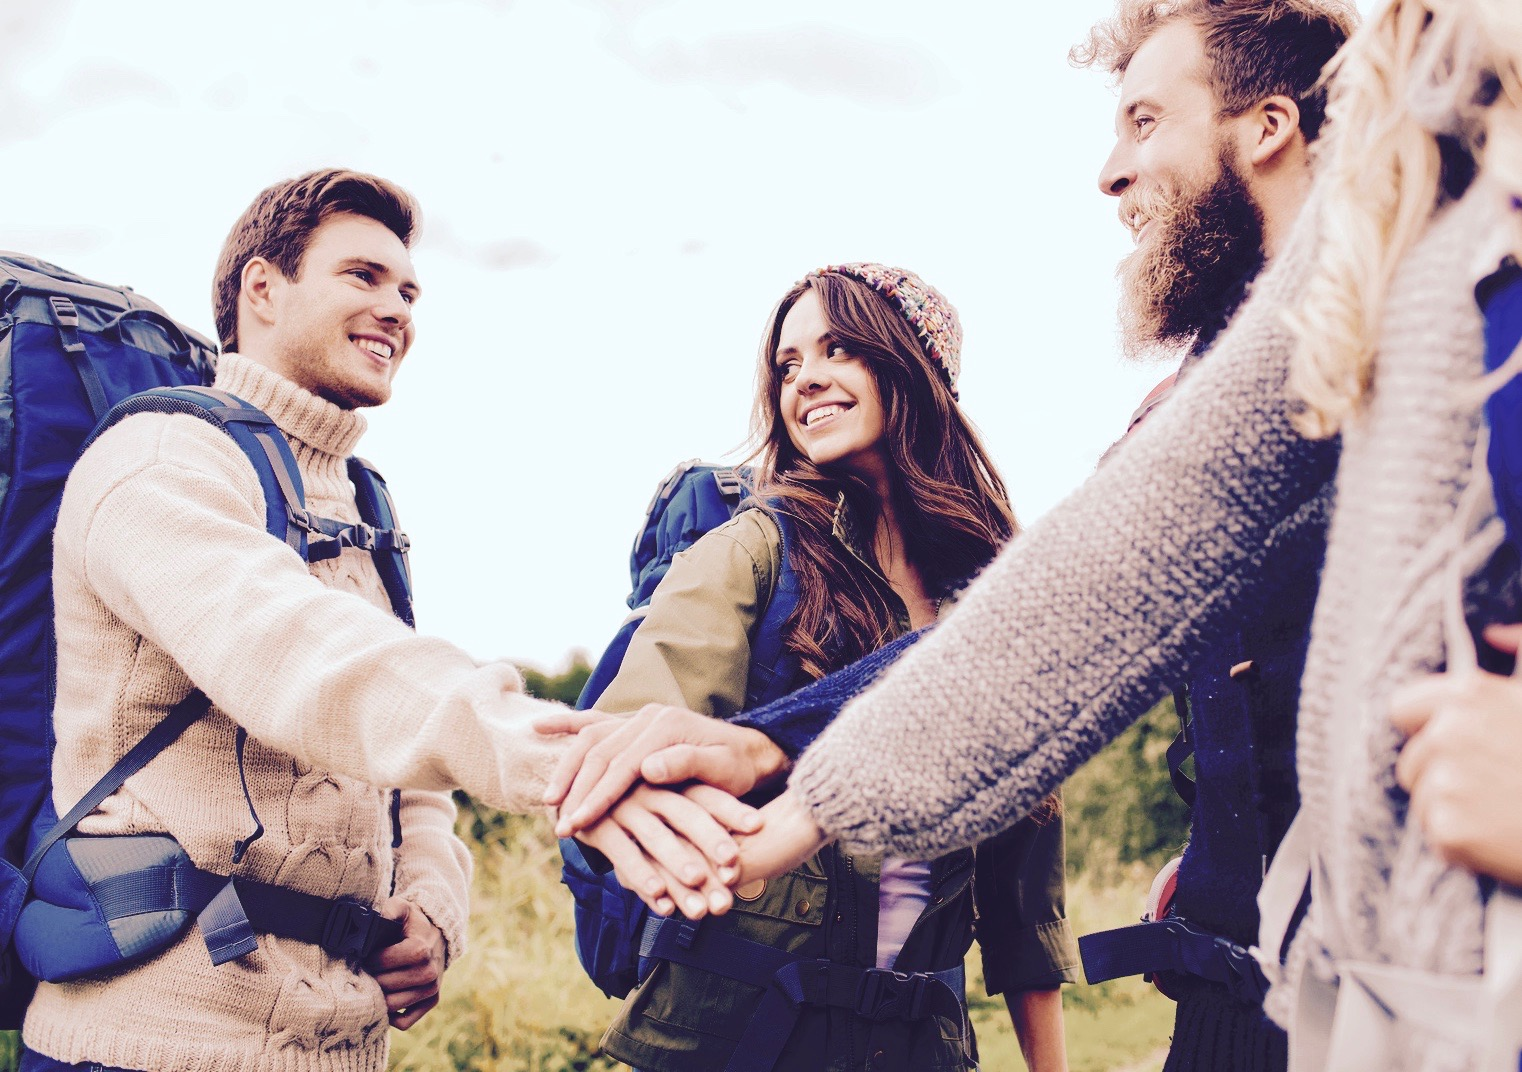 travel, tourism, hike, gesture and people concept - group of smiling friends with backpacks putting hands on top of each other